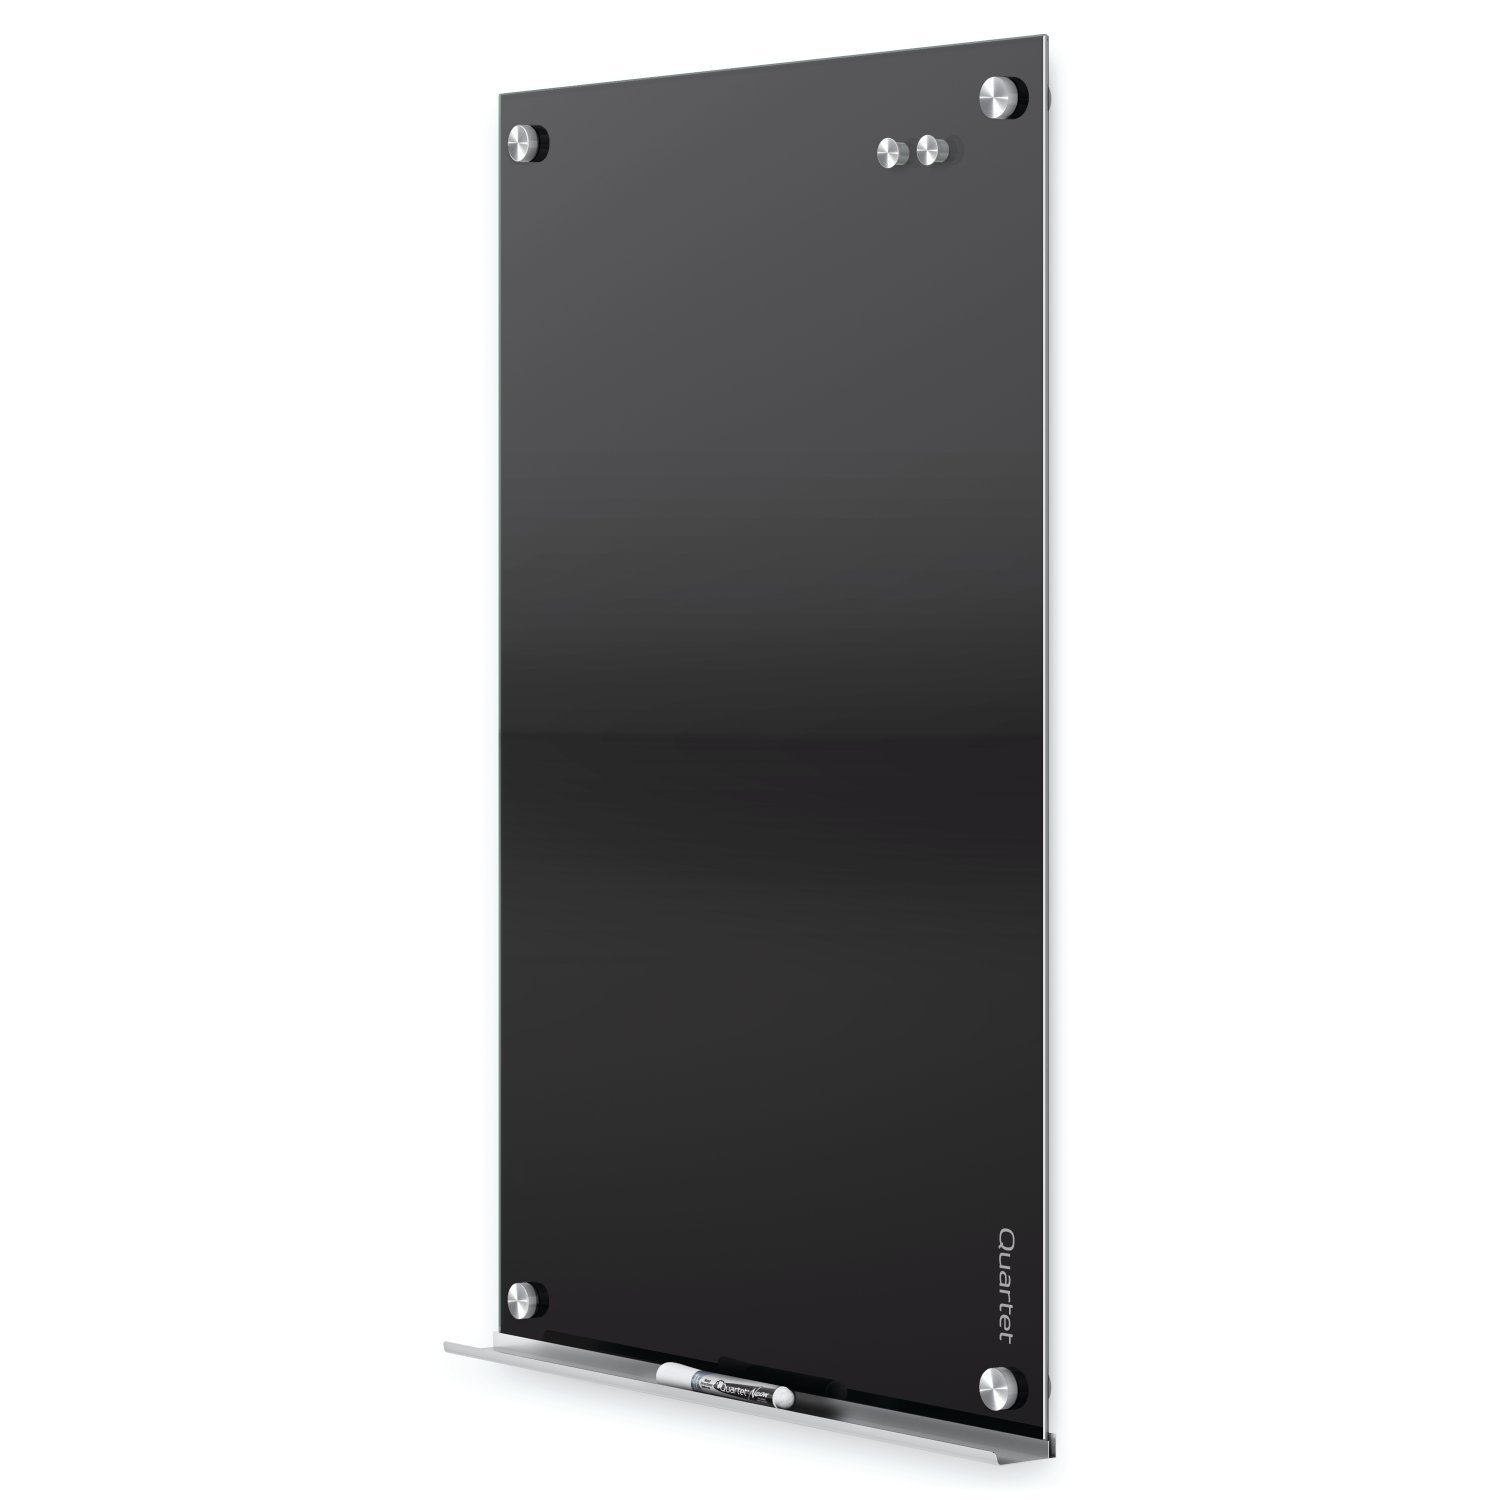 Quartet Glass Dry Erase Board, Magnetic Whiteboard, 2' x 1.5' White Board, Black Surface, Infinity (G2418B) by Quartet (Image #9)